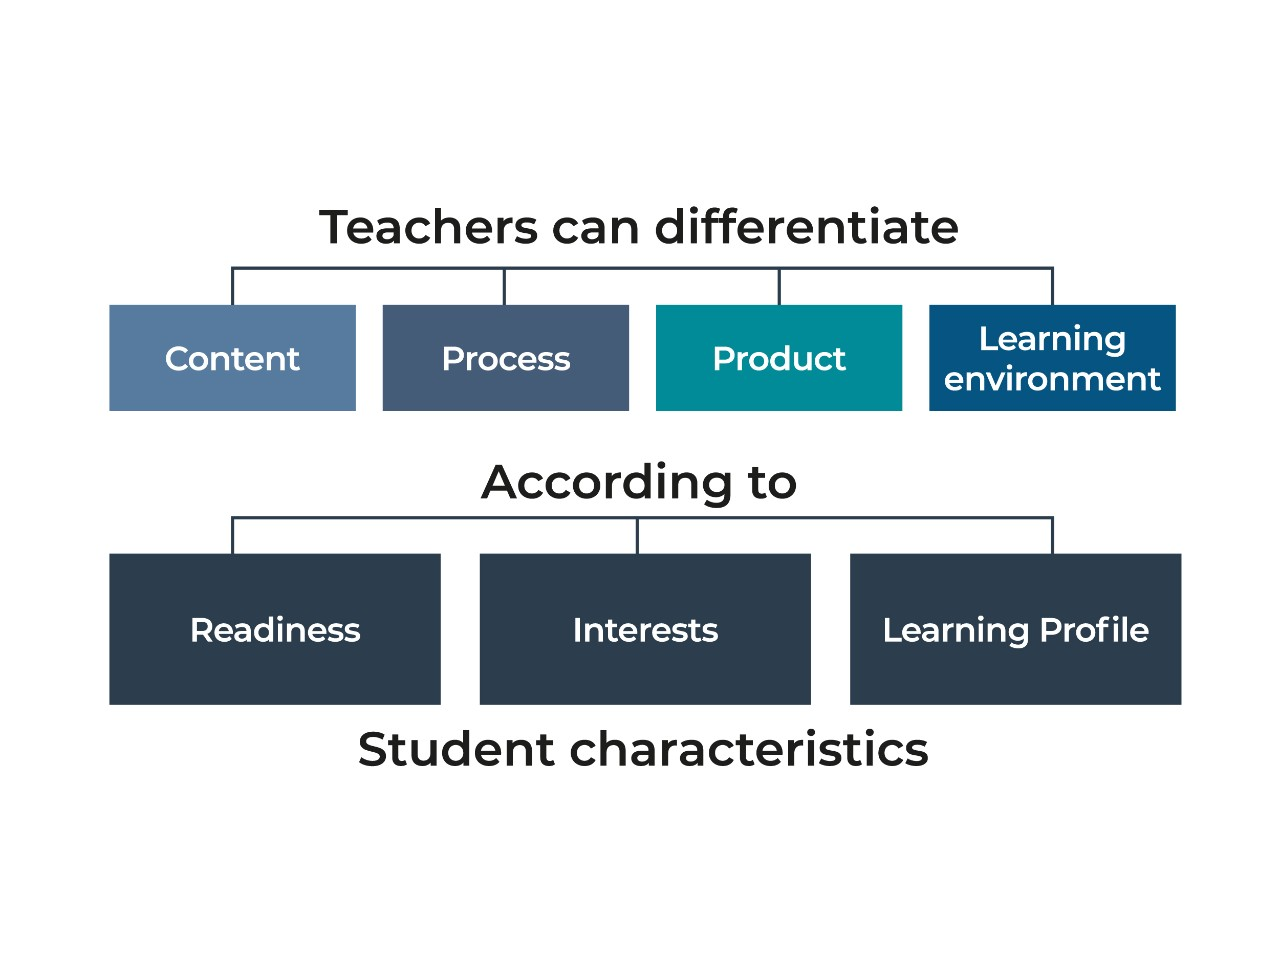 Teachers can differentiate according to student characteristics